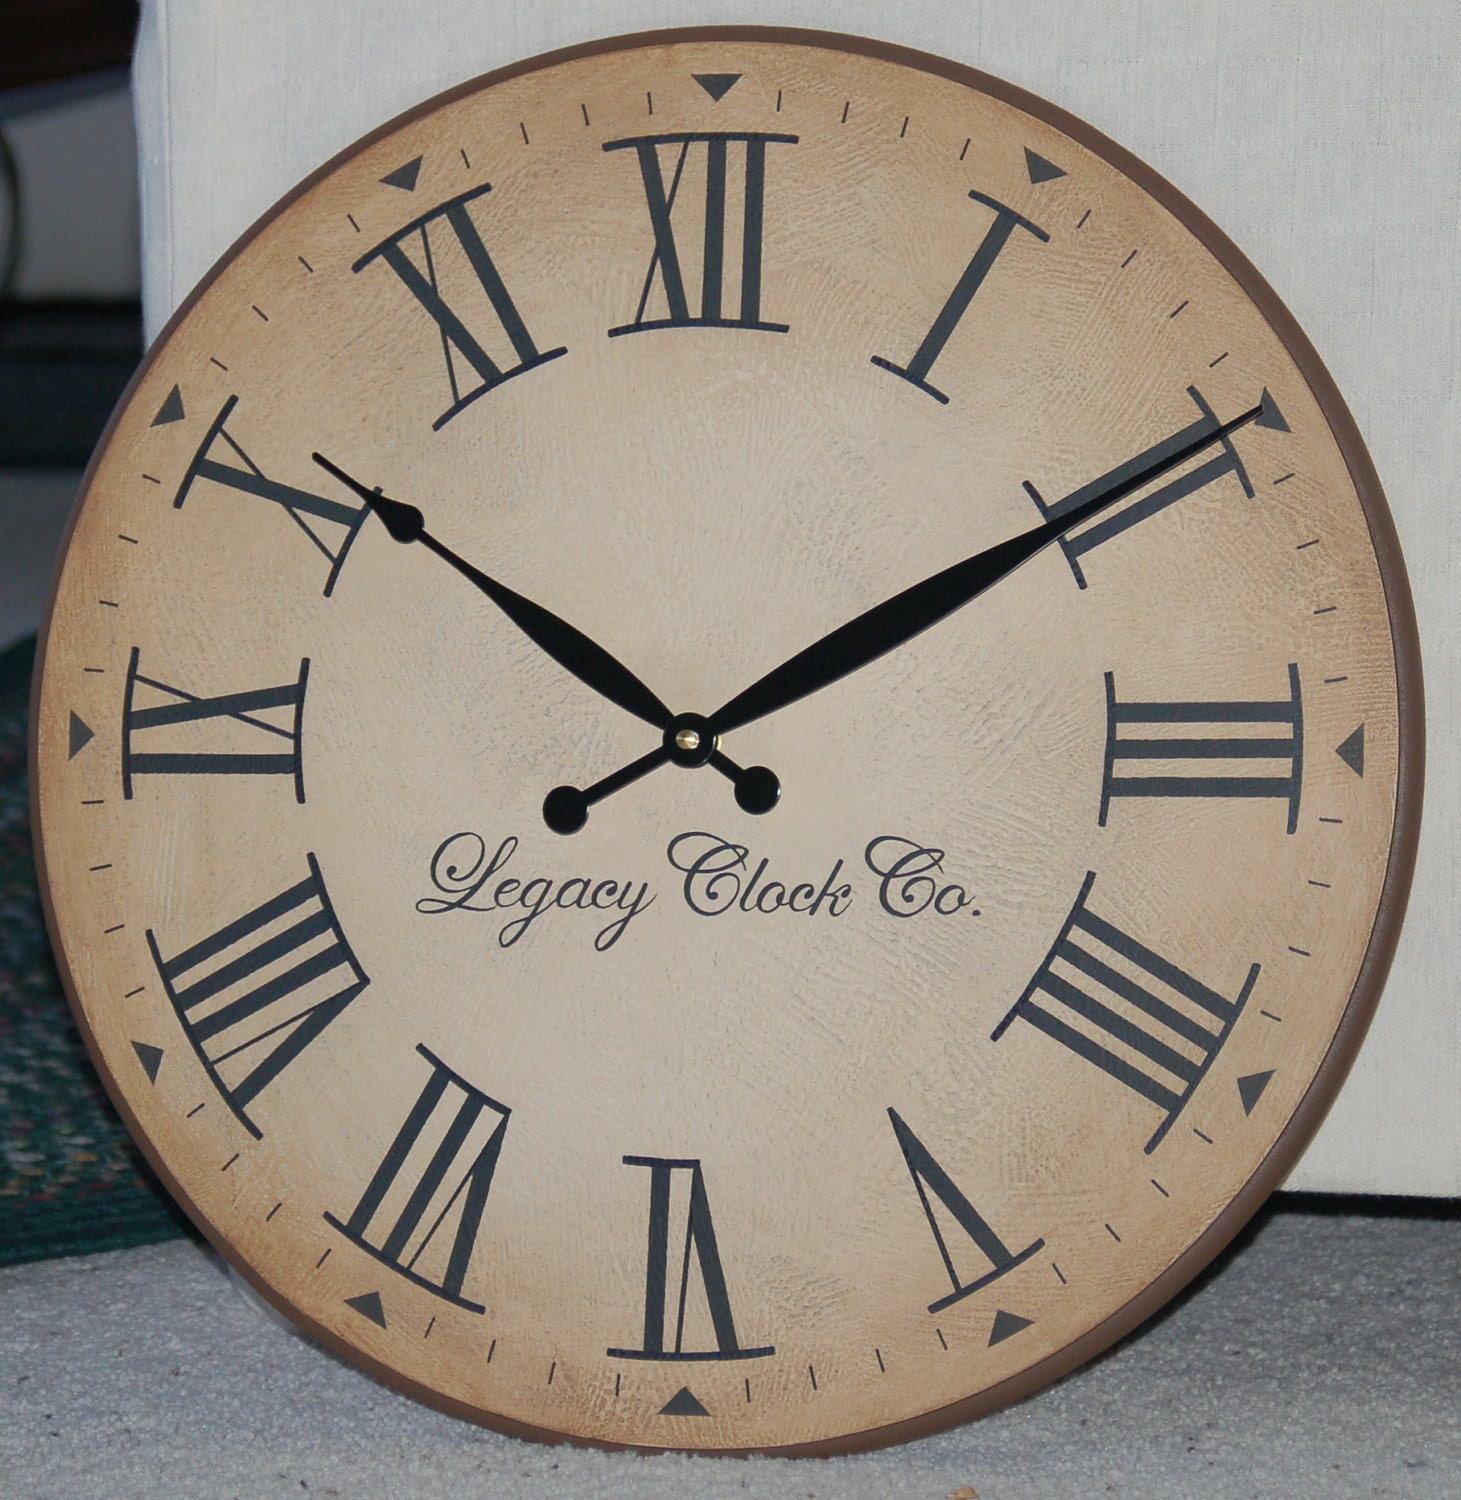 A simplistic design, the wall clock will exemplify the decor.